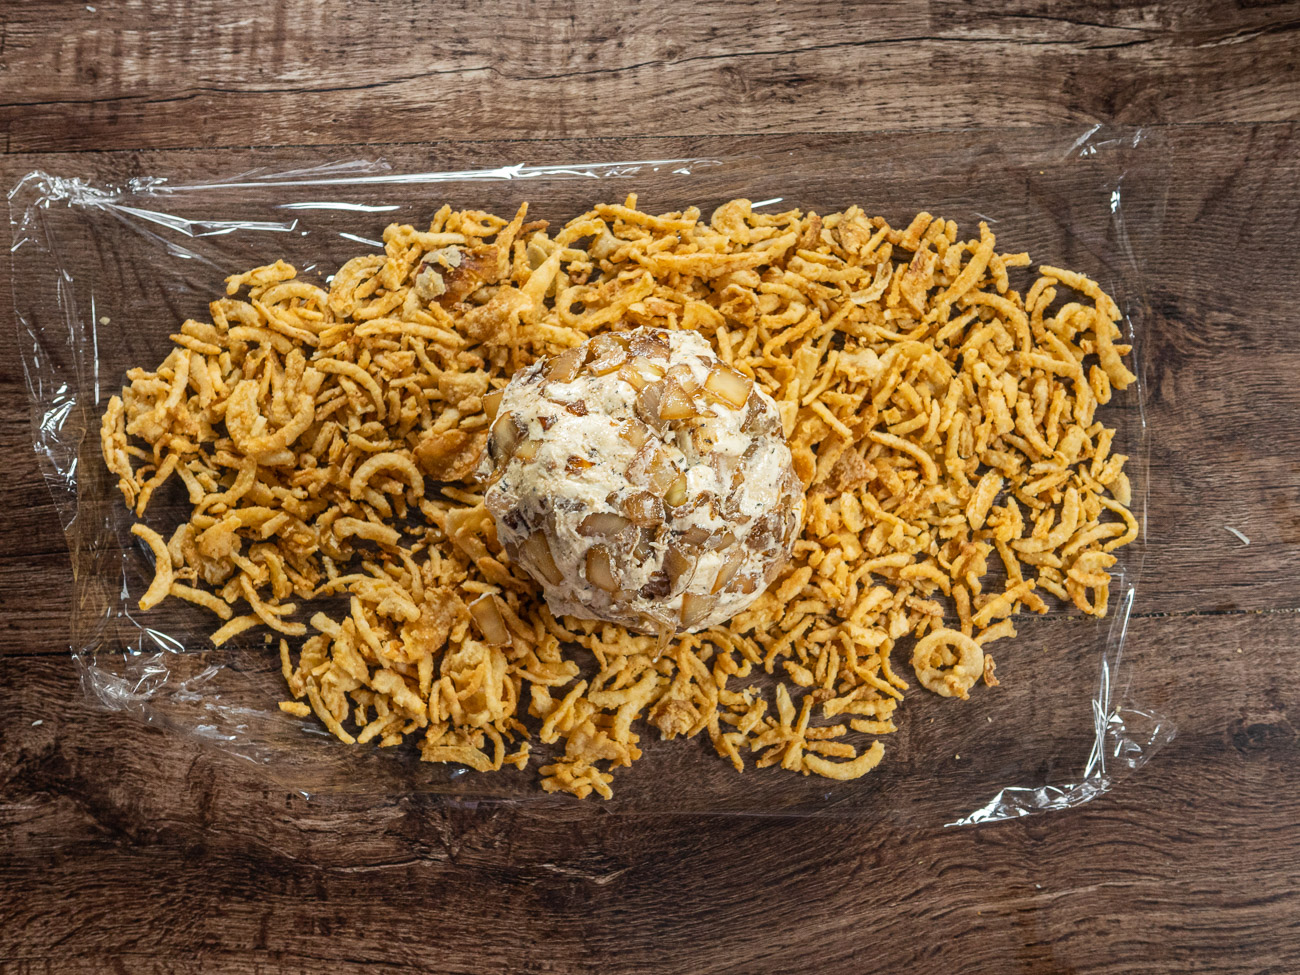 Before serving, roll ball in French fried onions. Enjoy!